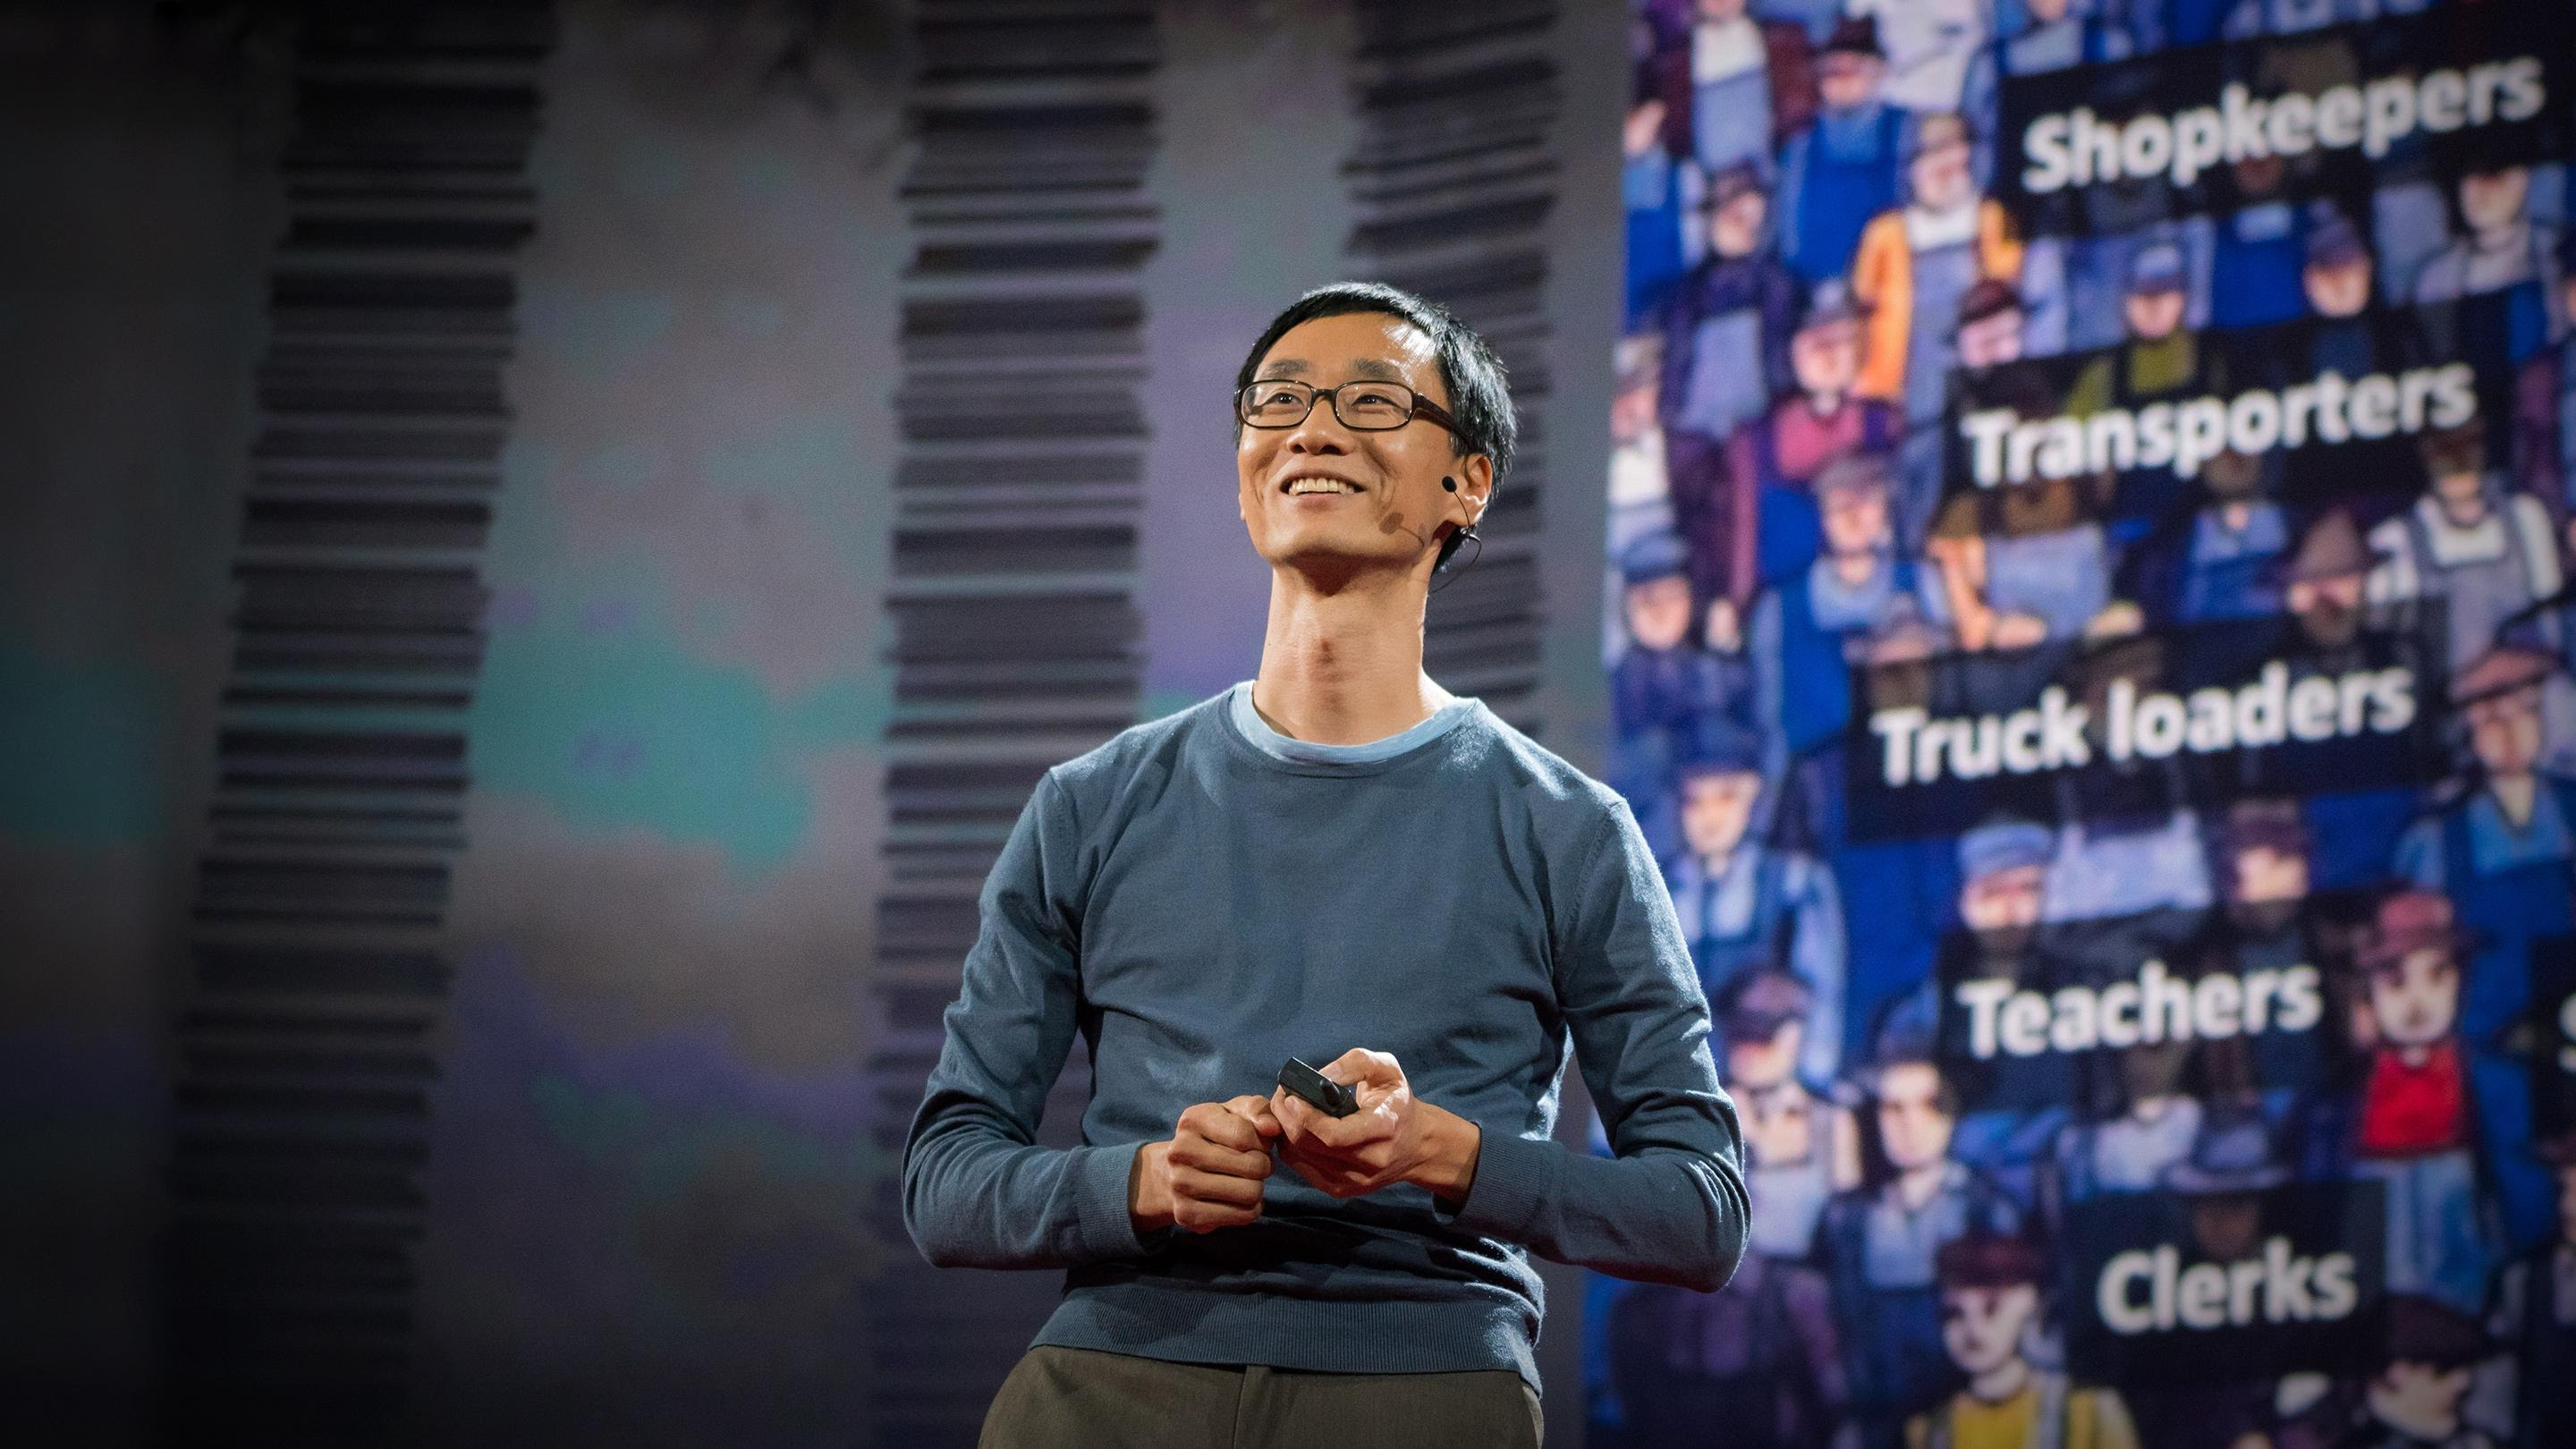 「Andrew Youn:我們能戰勝貧窮的三個理由」- 3 Reasons Why We Can Win the Fight against Poverty